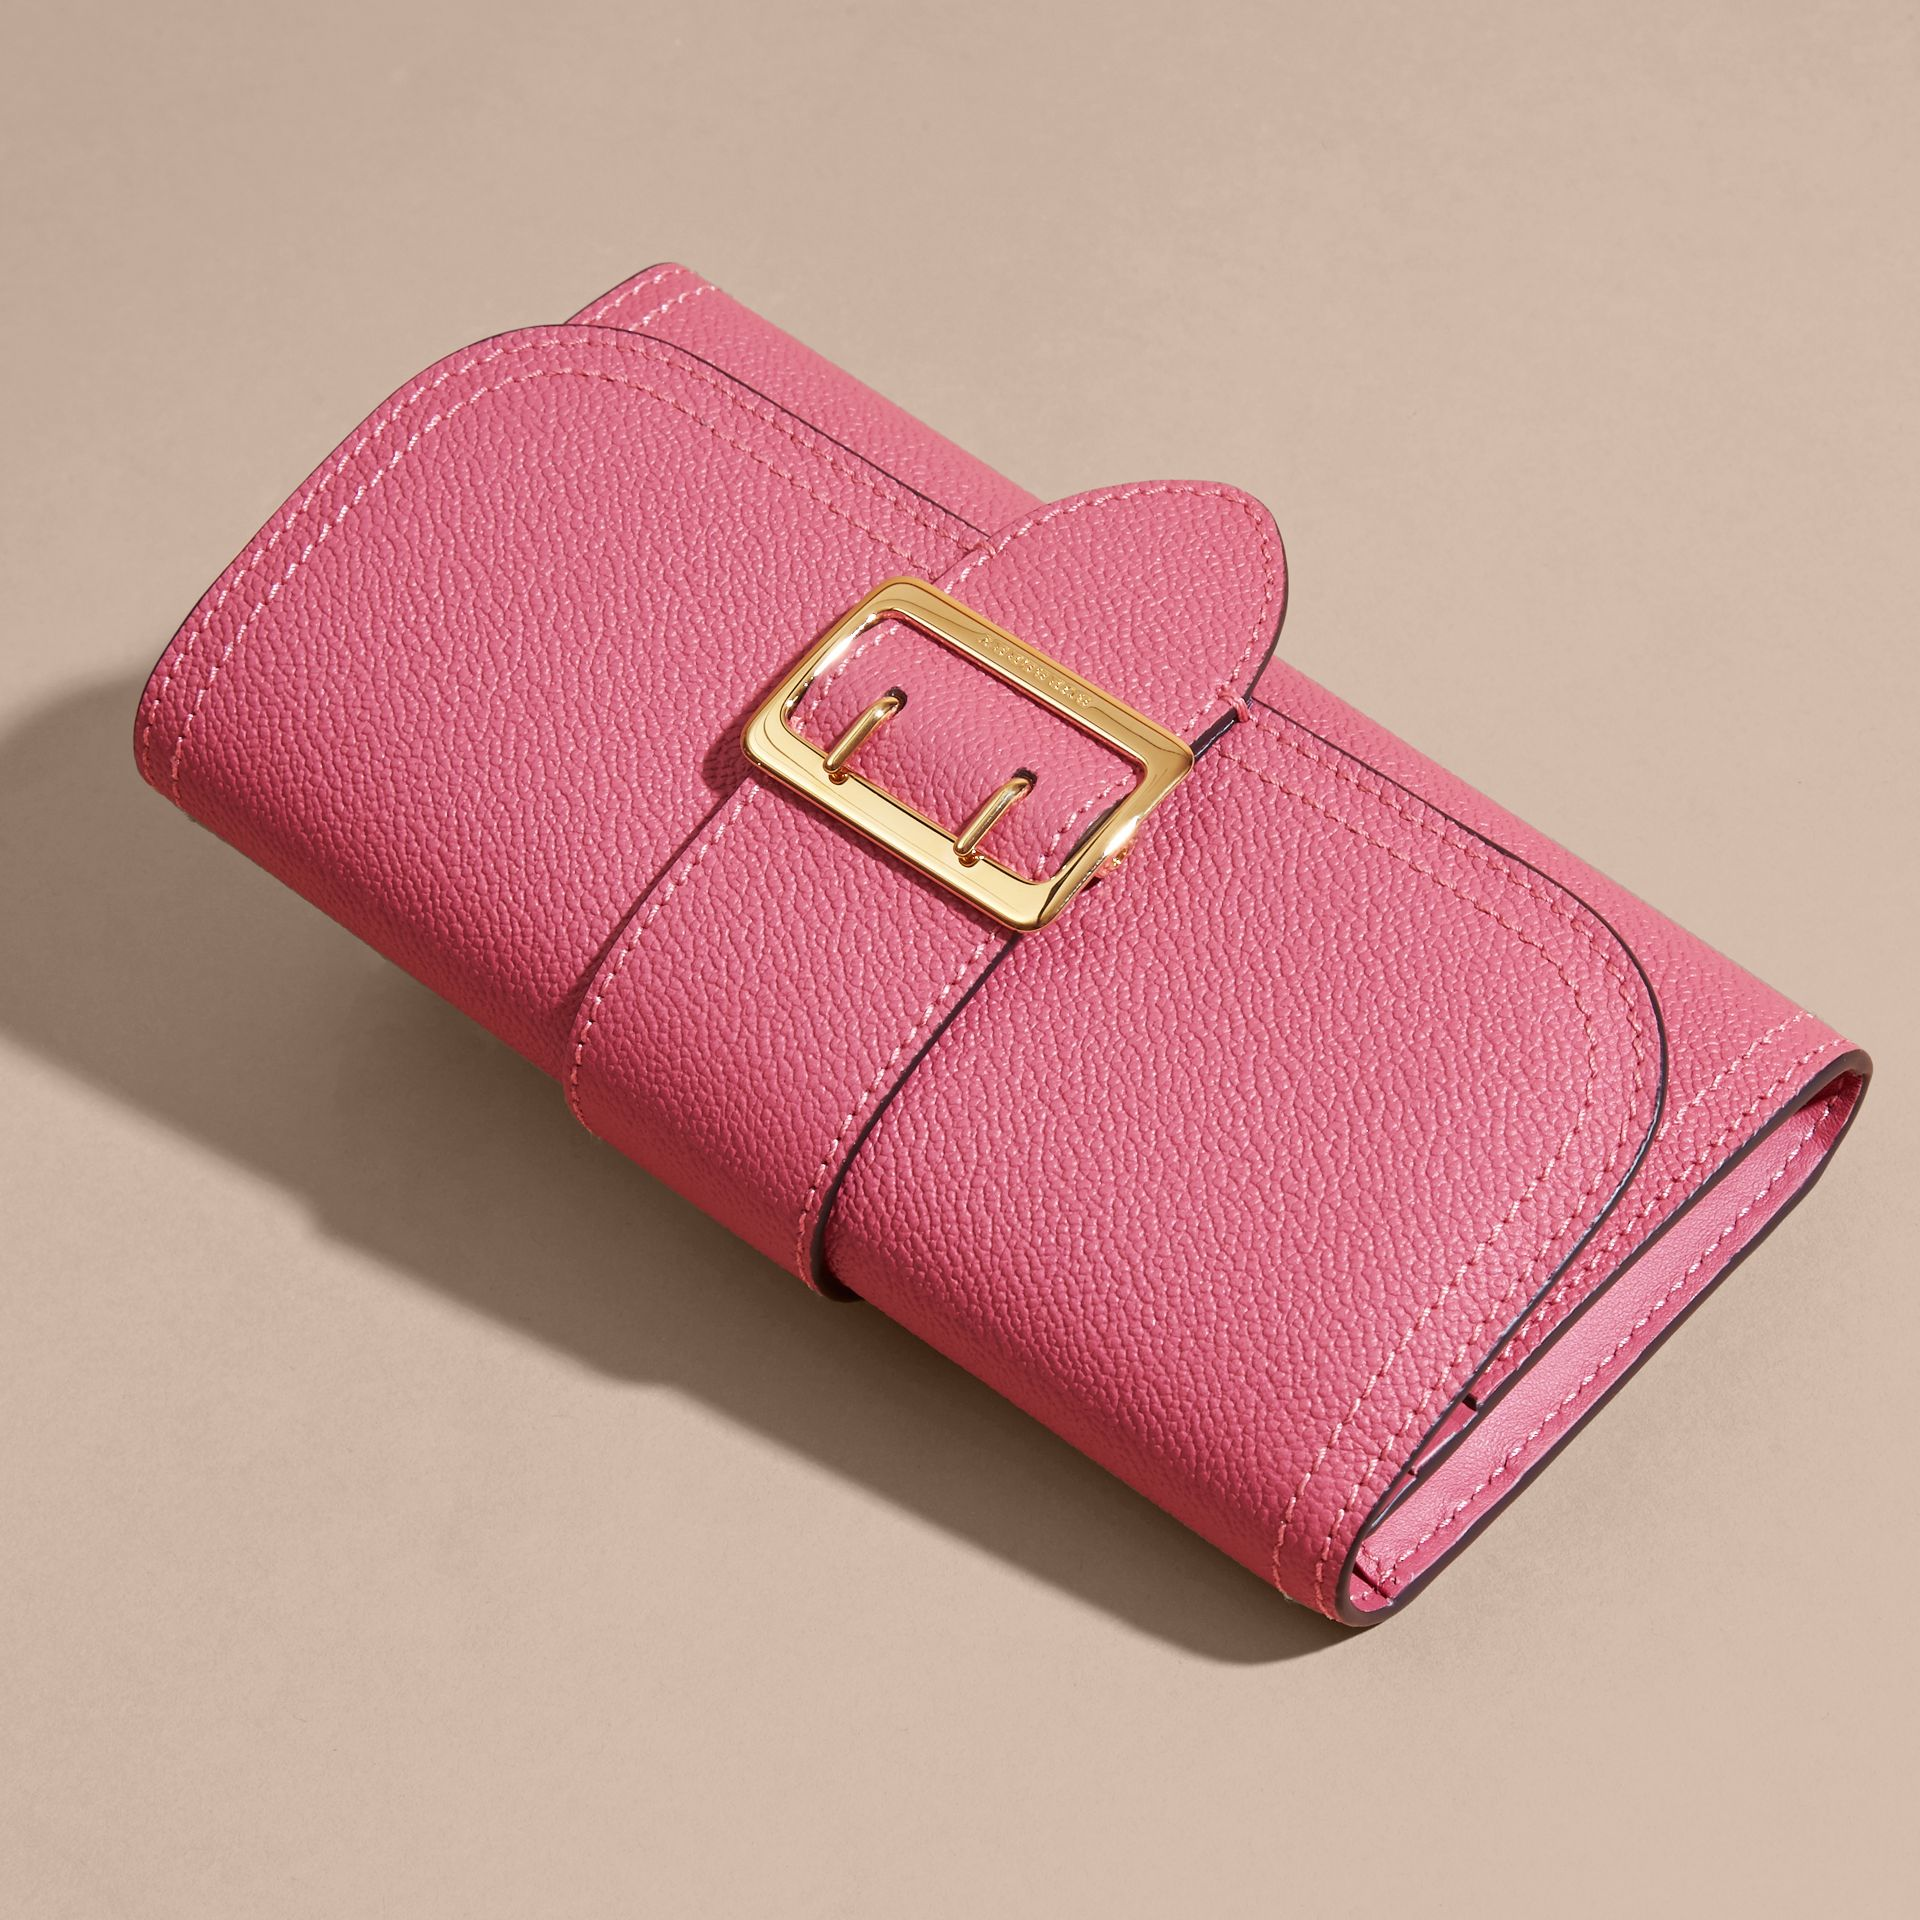 Pink azalea Textured Leather Continental Wallet Pink Azalea - gallery image 6